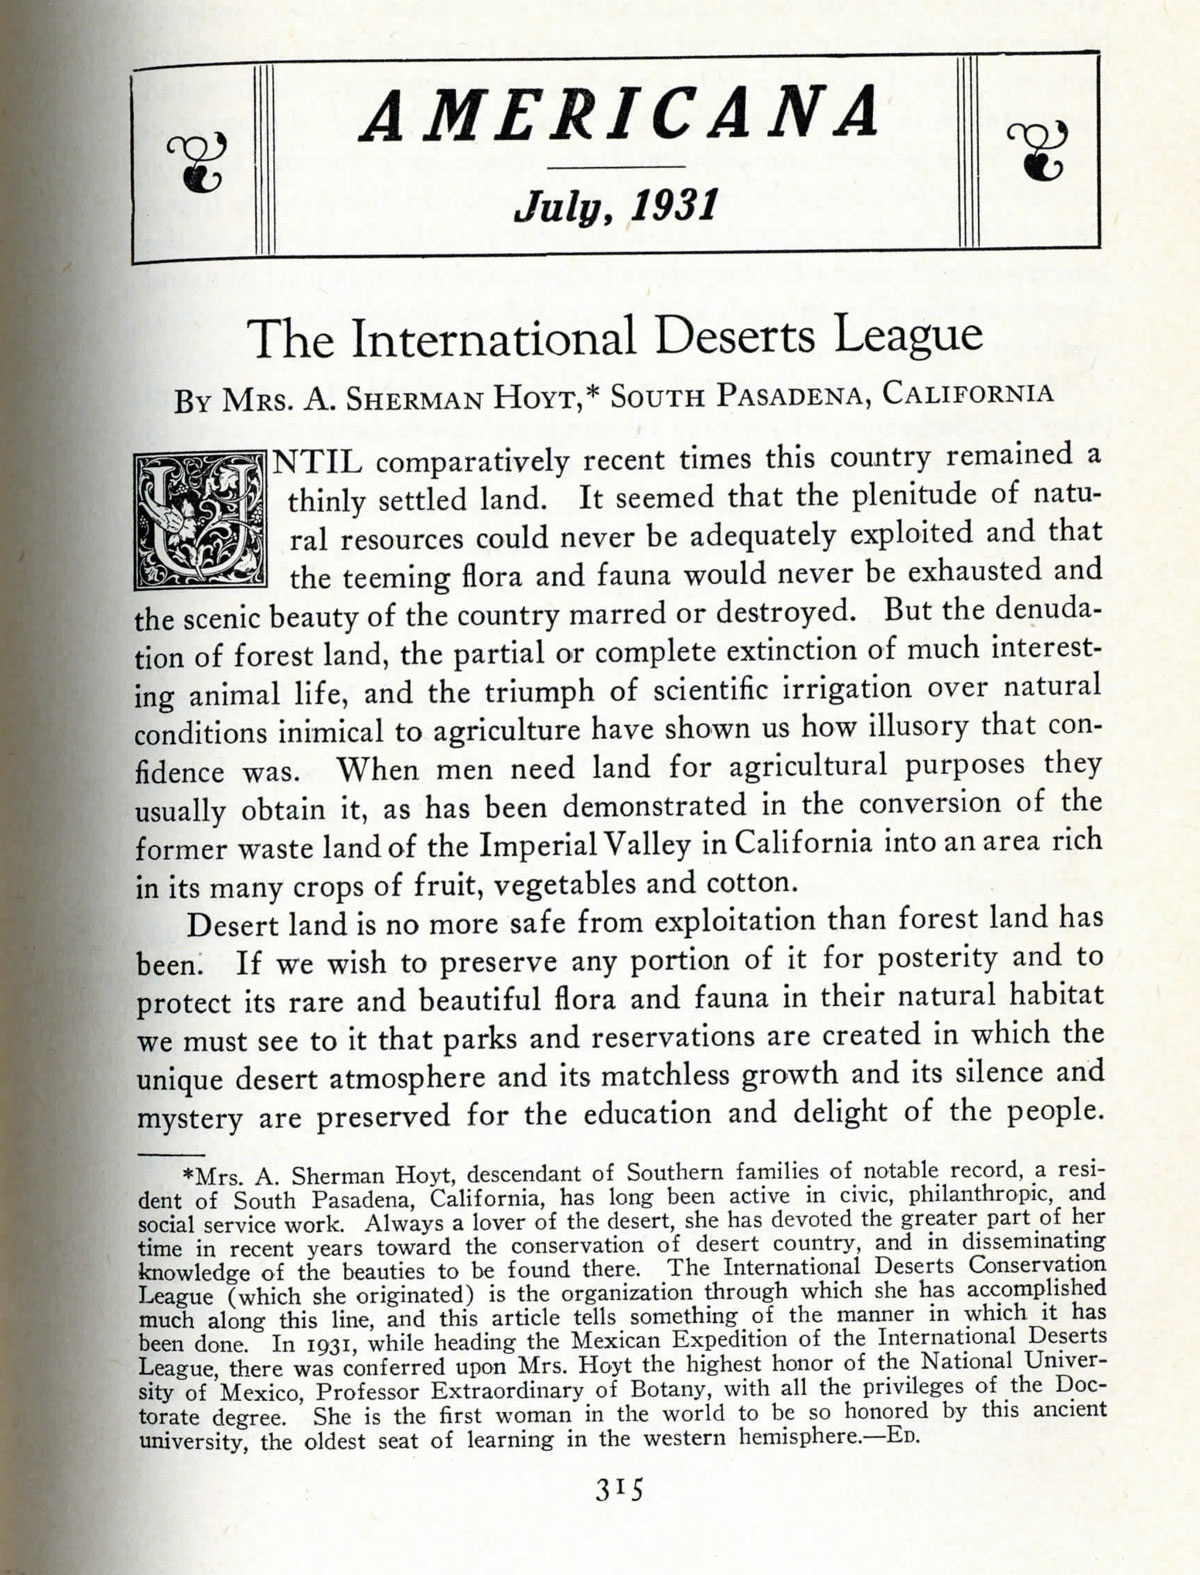 Ephemera from The International Deserts League founded by Minerva Hamilton Holt in March 1930